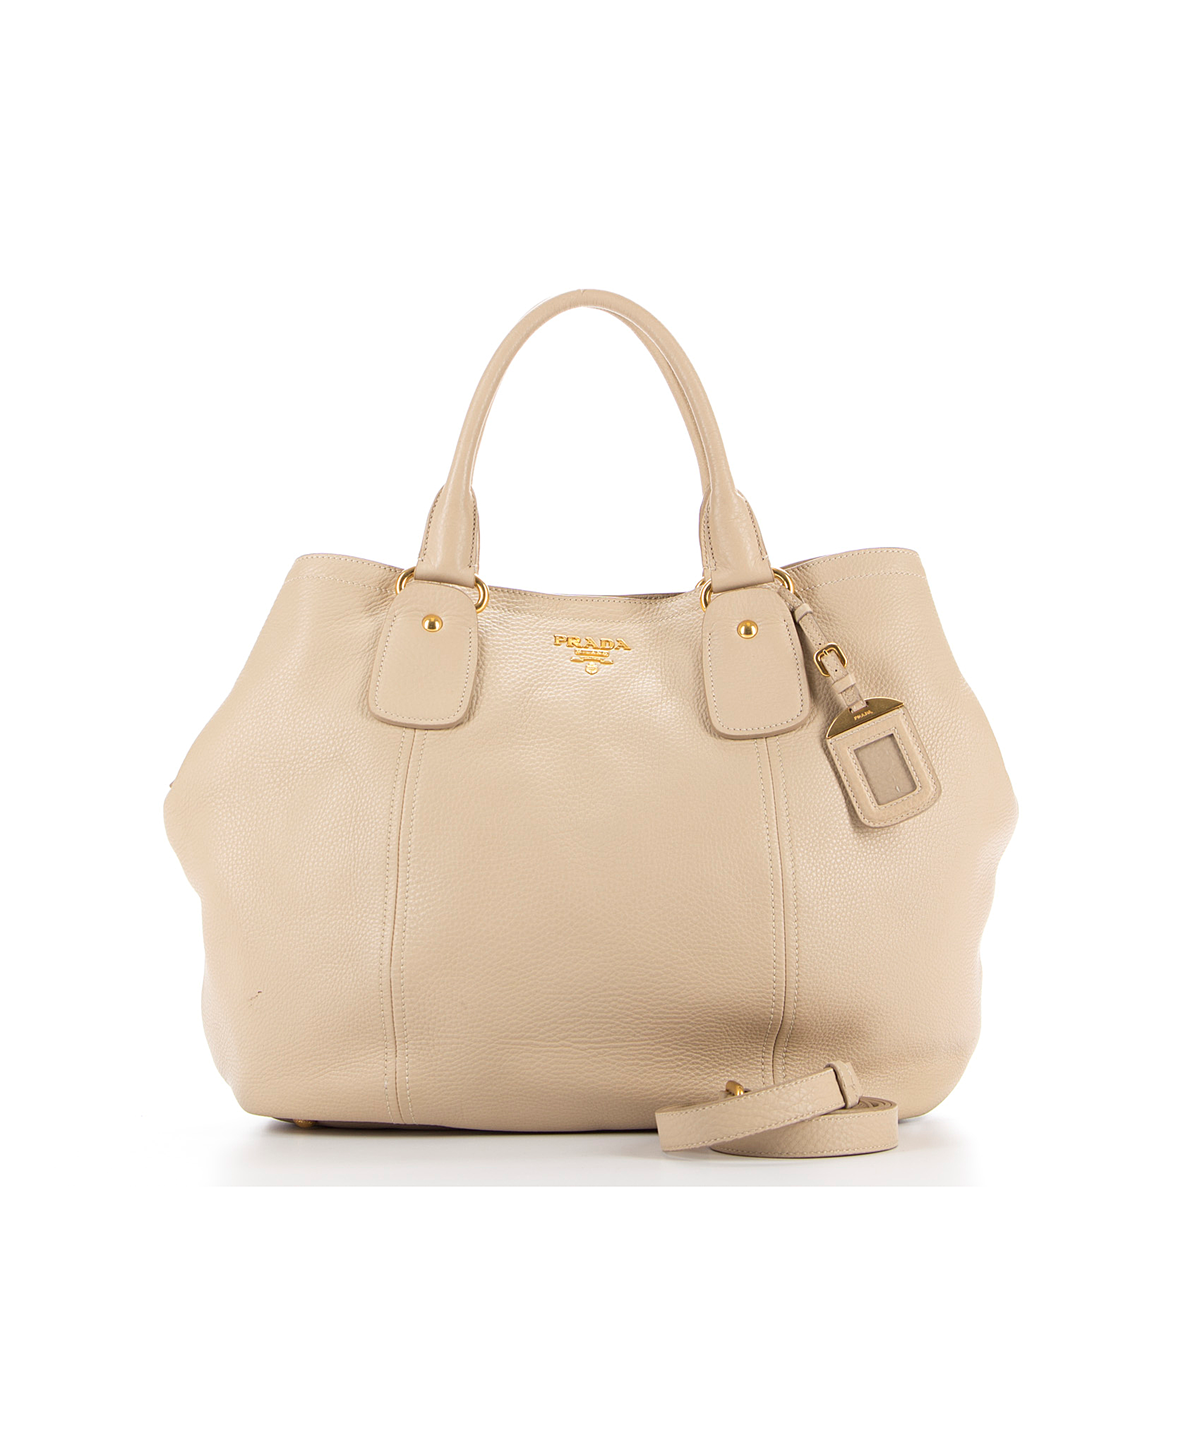 0db0b1dc69b5 PRADA Pre-Owned Prada Beige Pebbled Leather Extra Large Tote With Strap'. # prada #bags #canvas #tote #leather #lining #shoulder bags #hand bags #